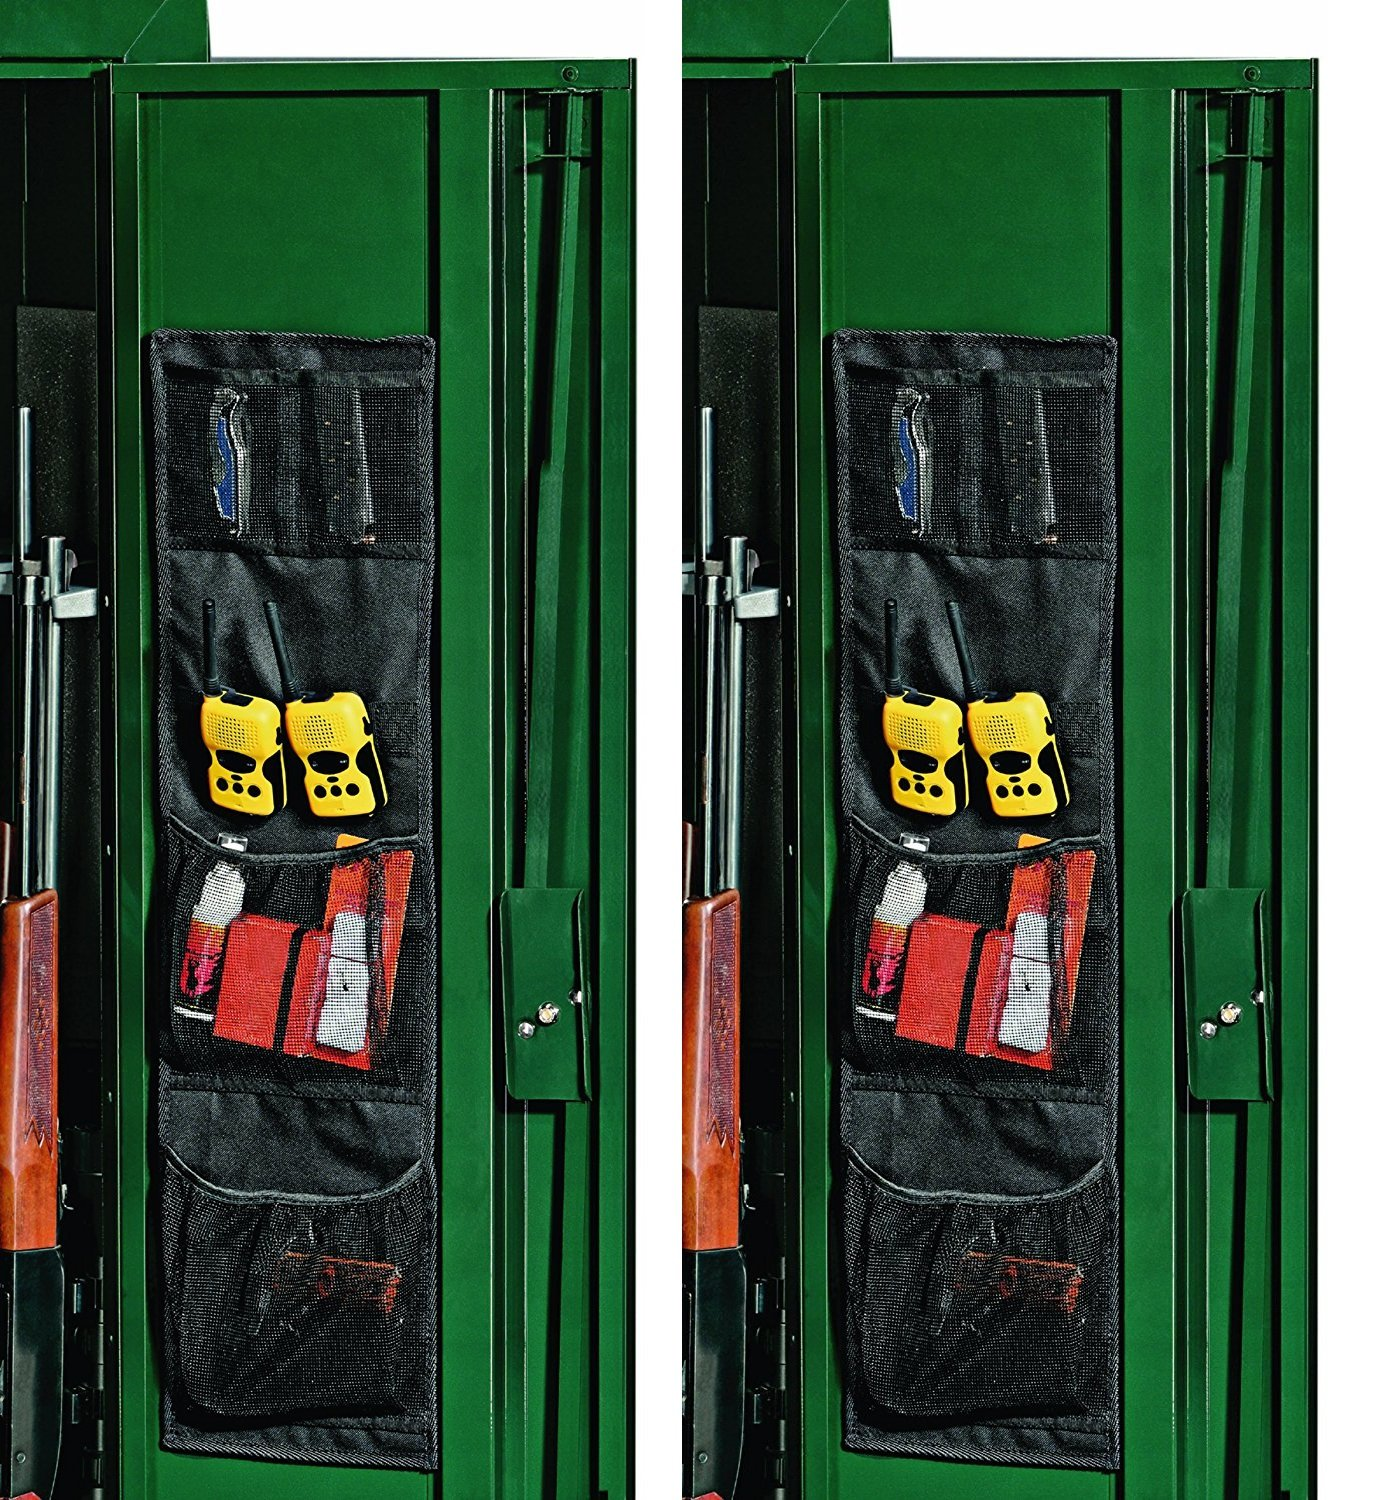 Stack-On SPAO-148 Small Fabric Organizer for Long-Gun Cabinets (Pack of 2)